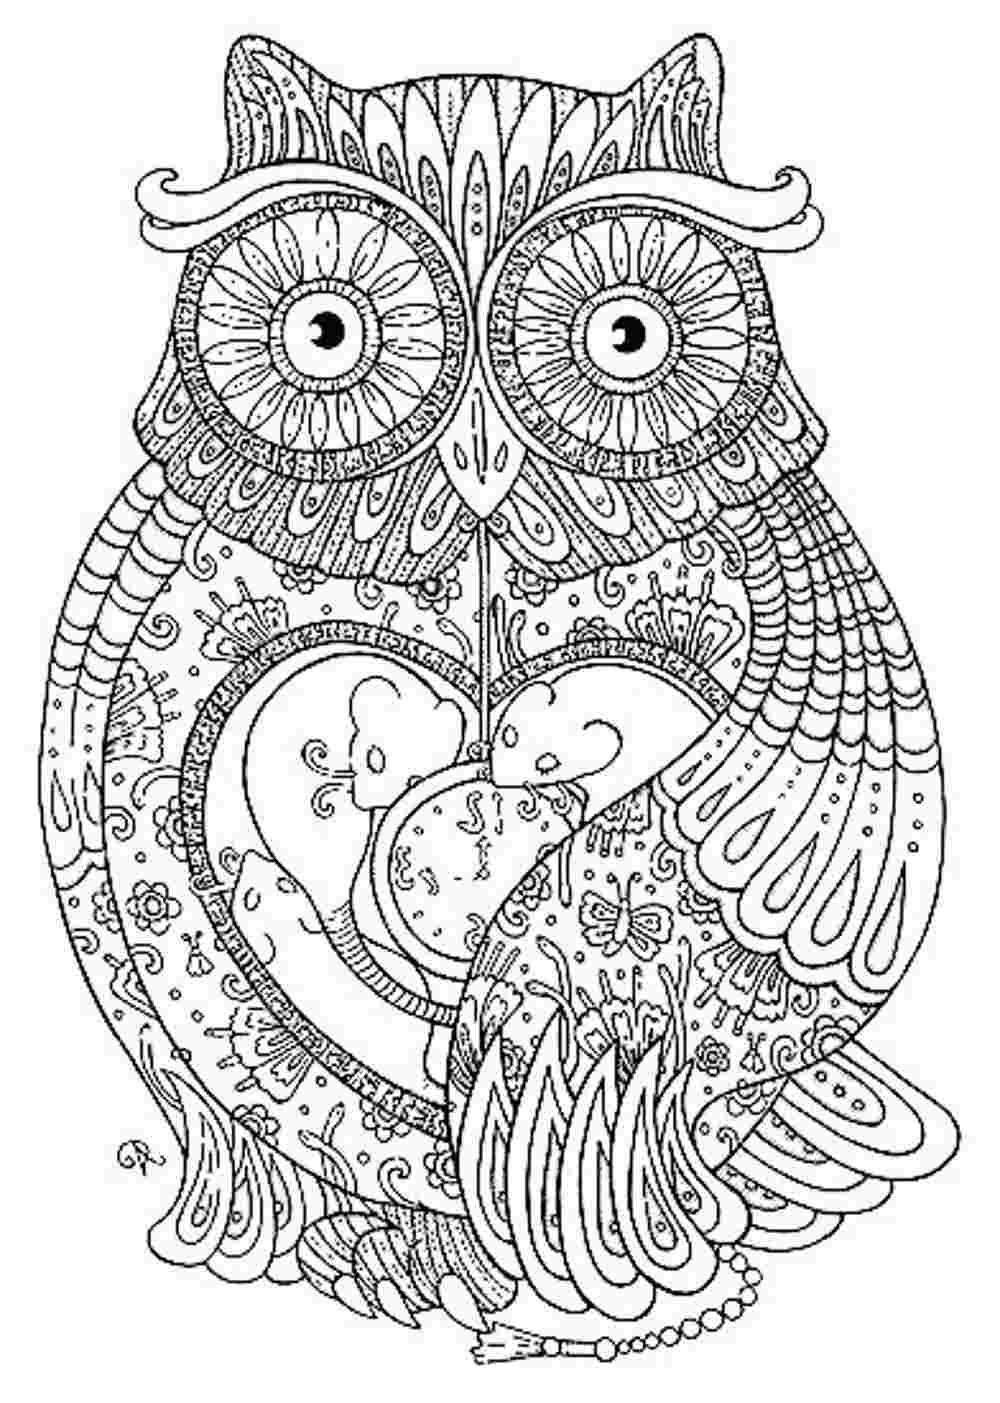 animal mandala coloring pages to download and print for free. Black Bedroom Furniture Sets. Home Design Ideas